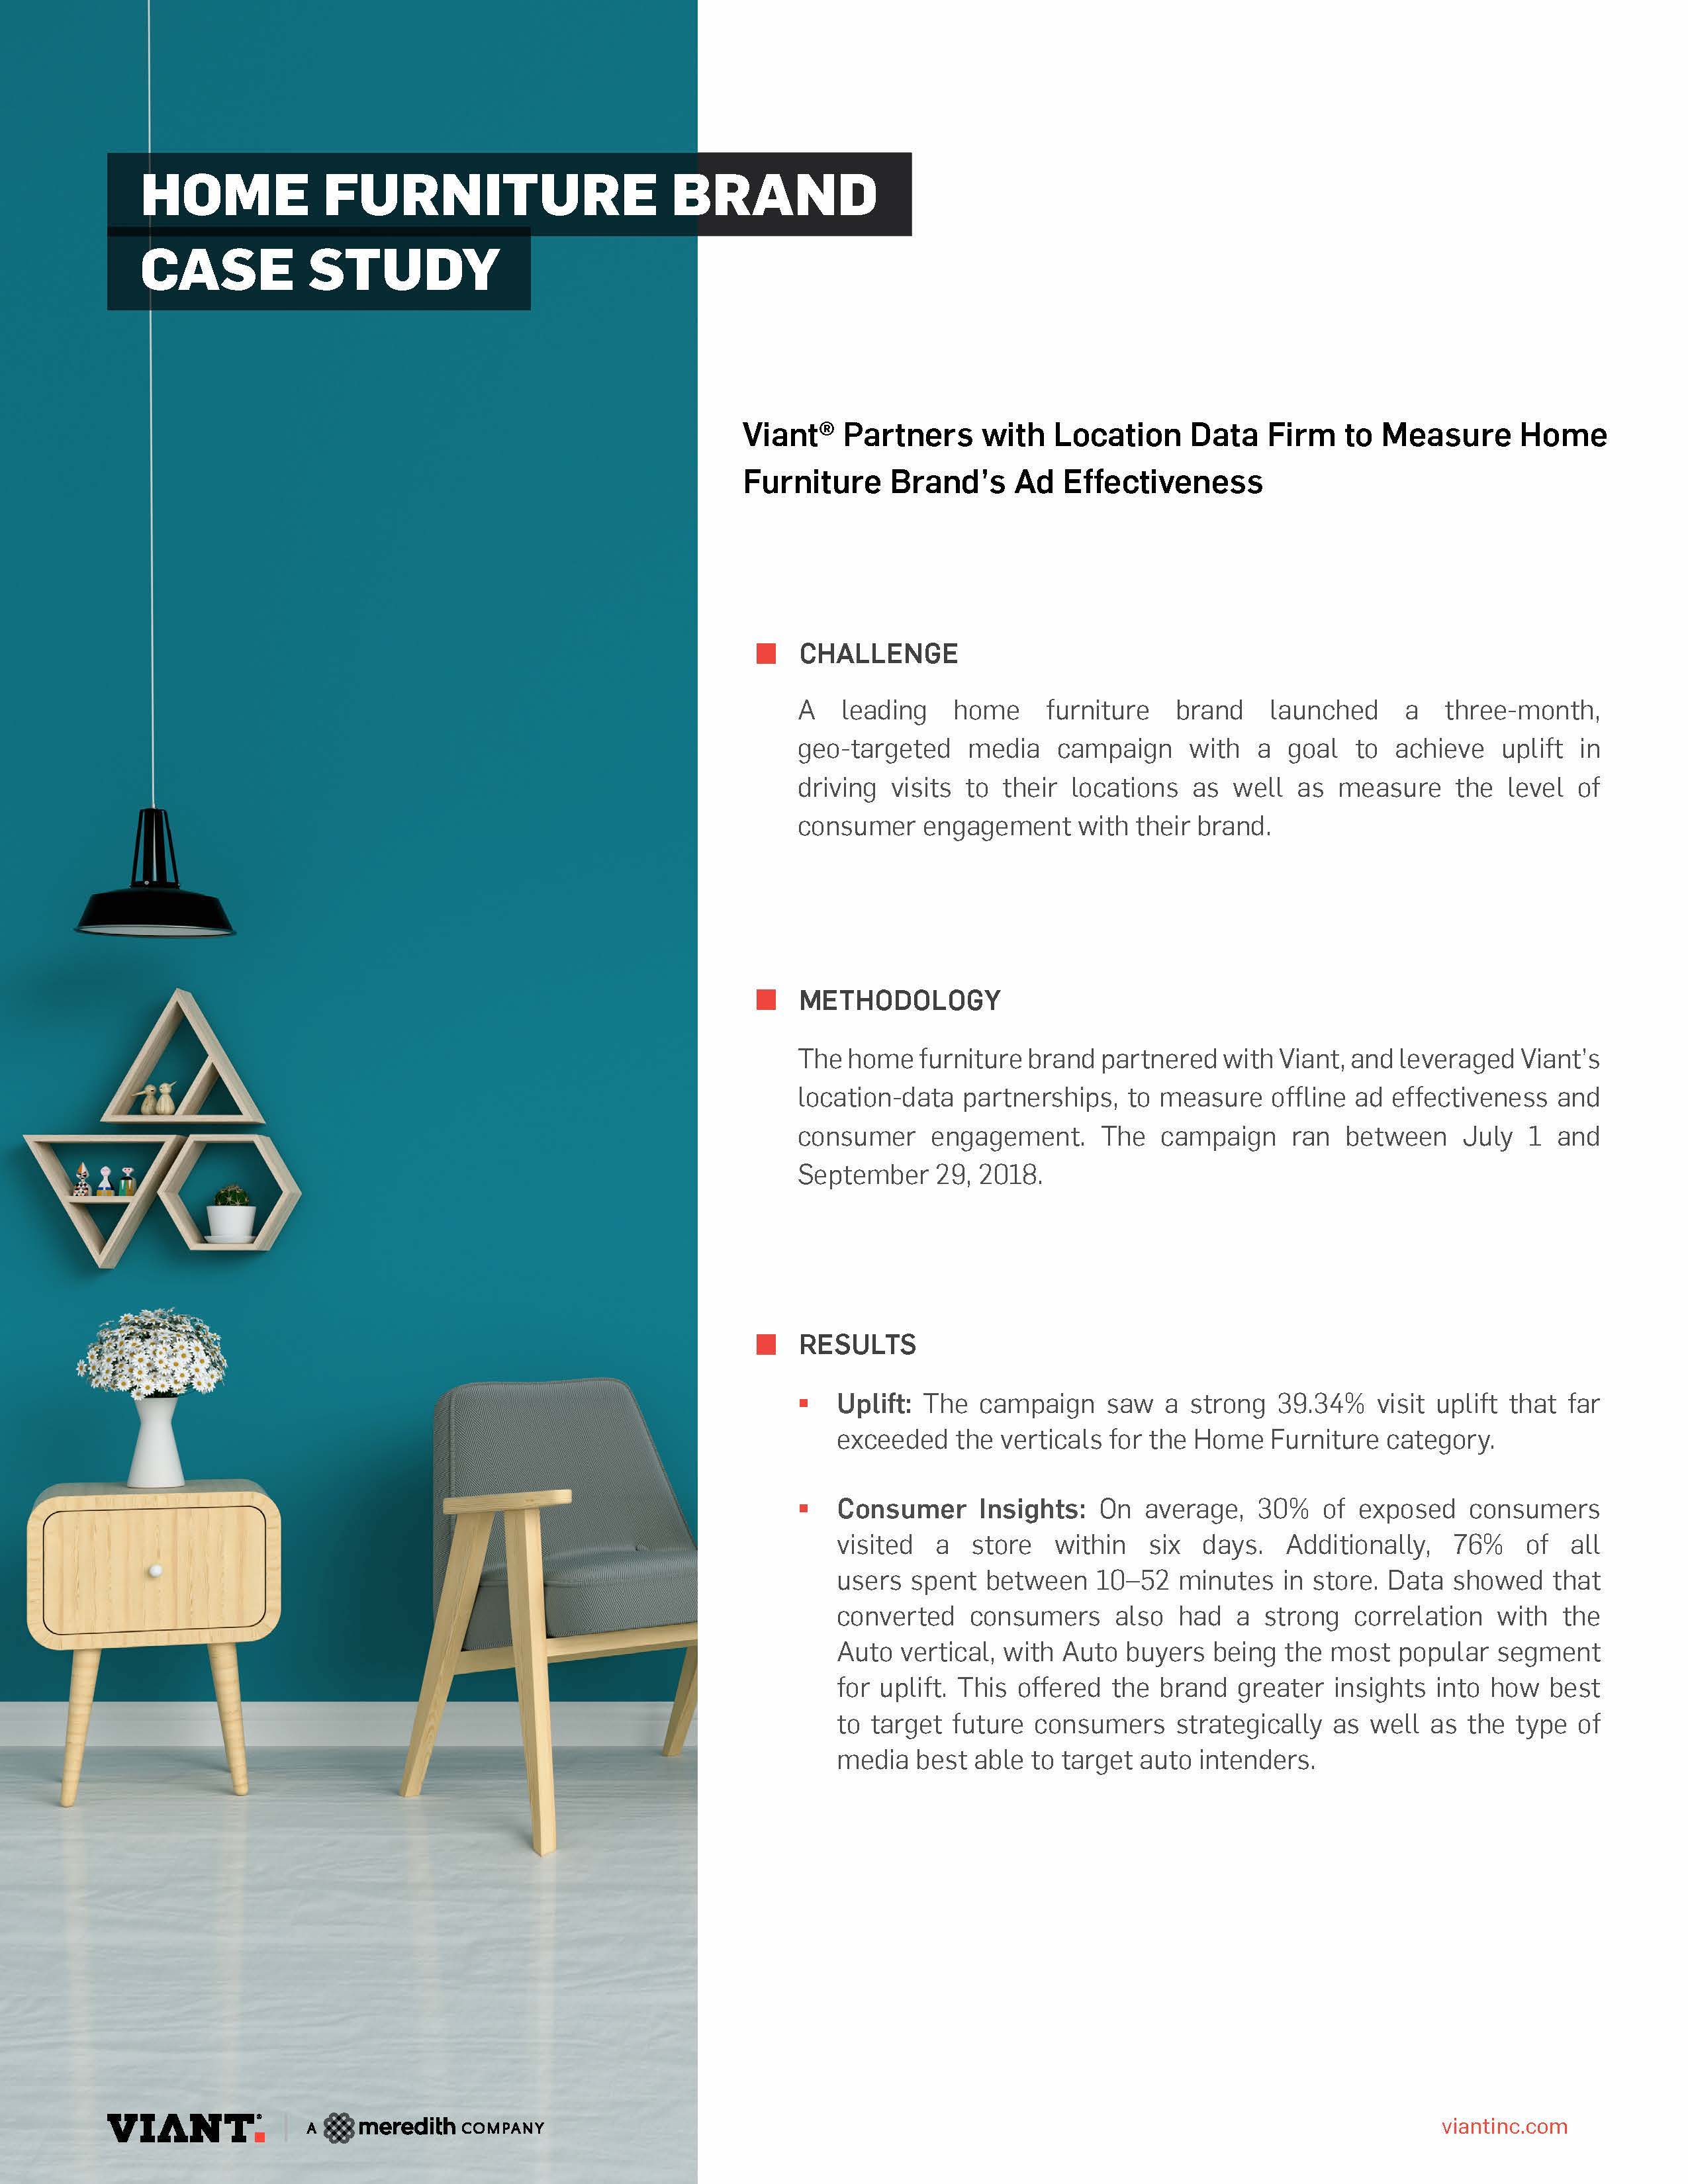 Case Study: Home Furniture Brand